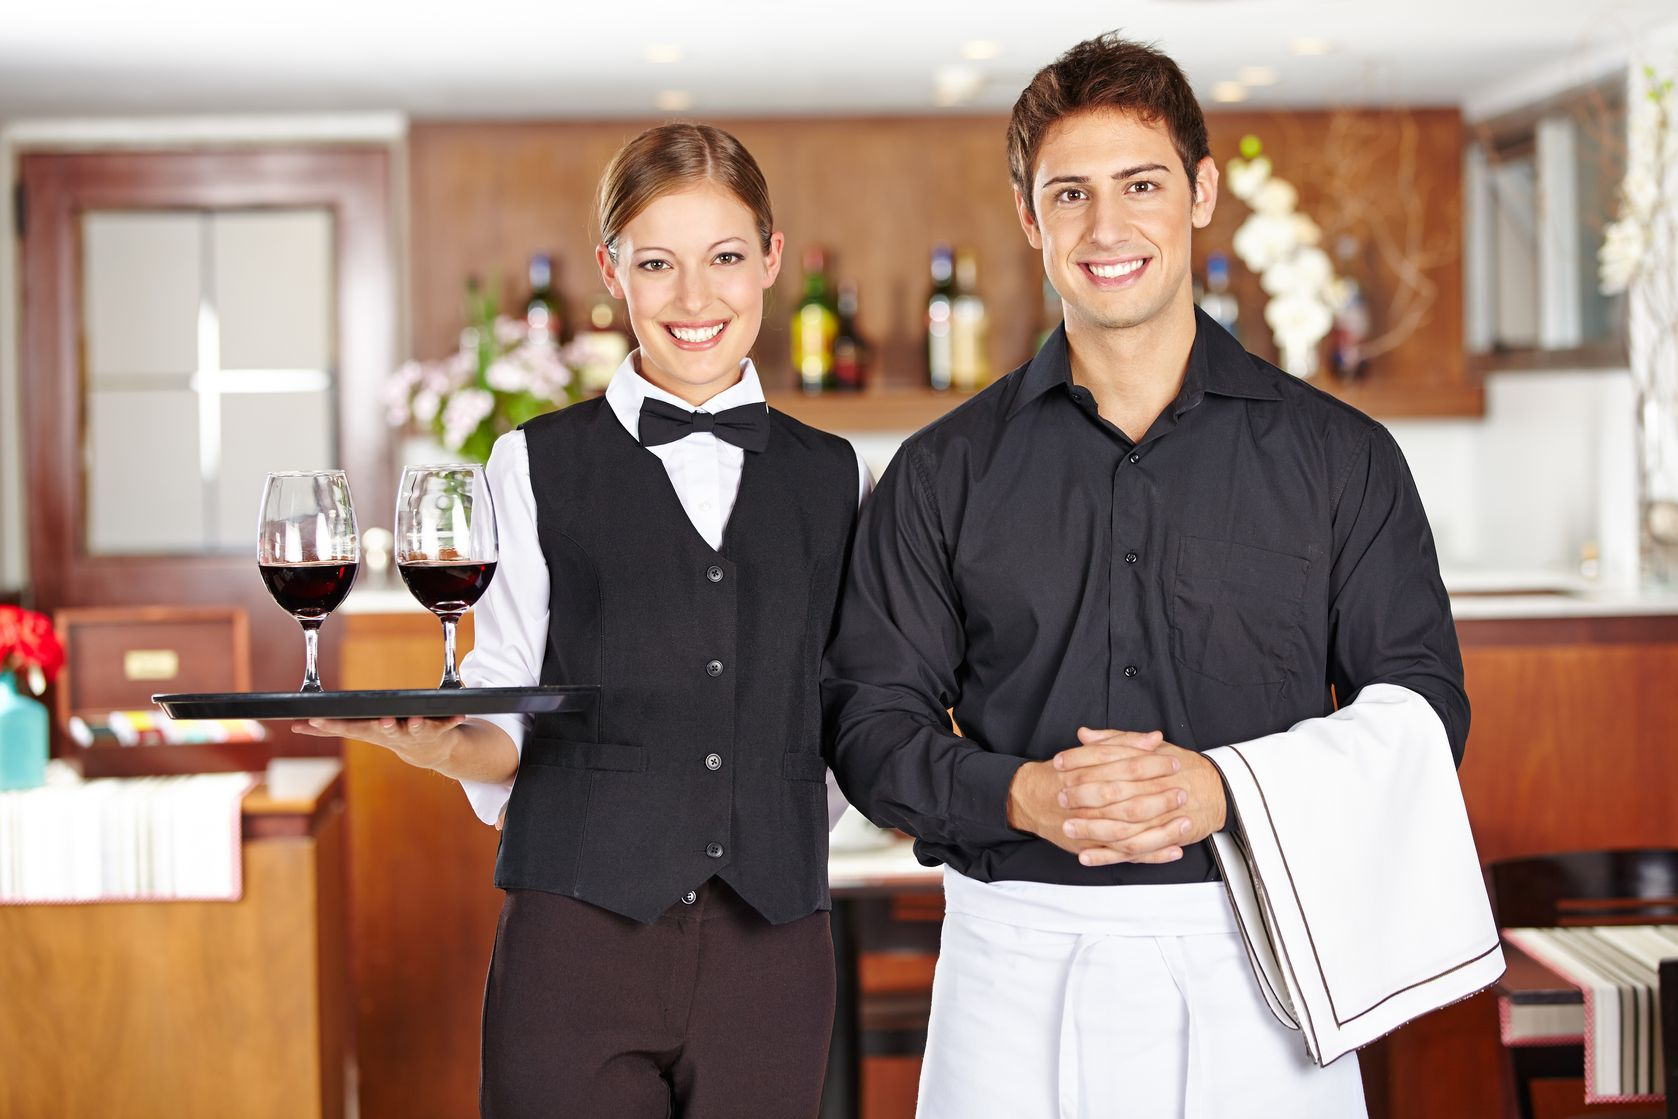 Event and Catering Business for sale in Brisbane